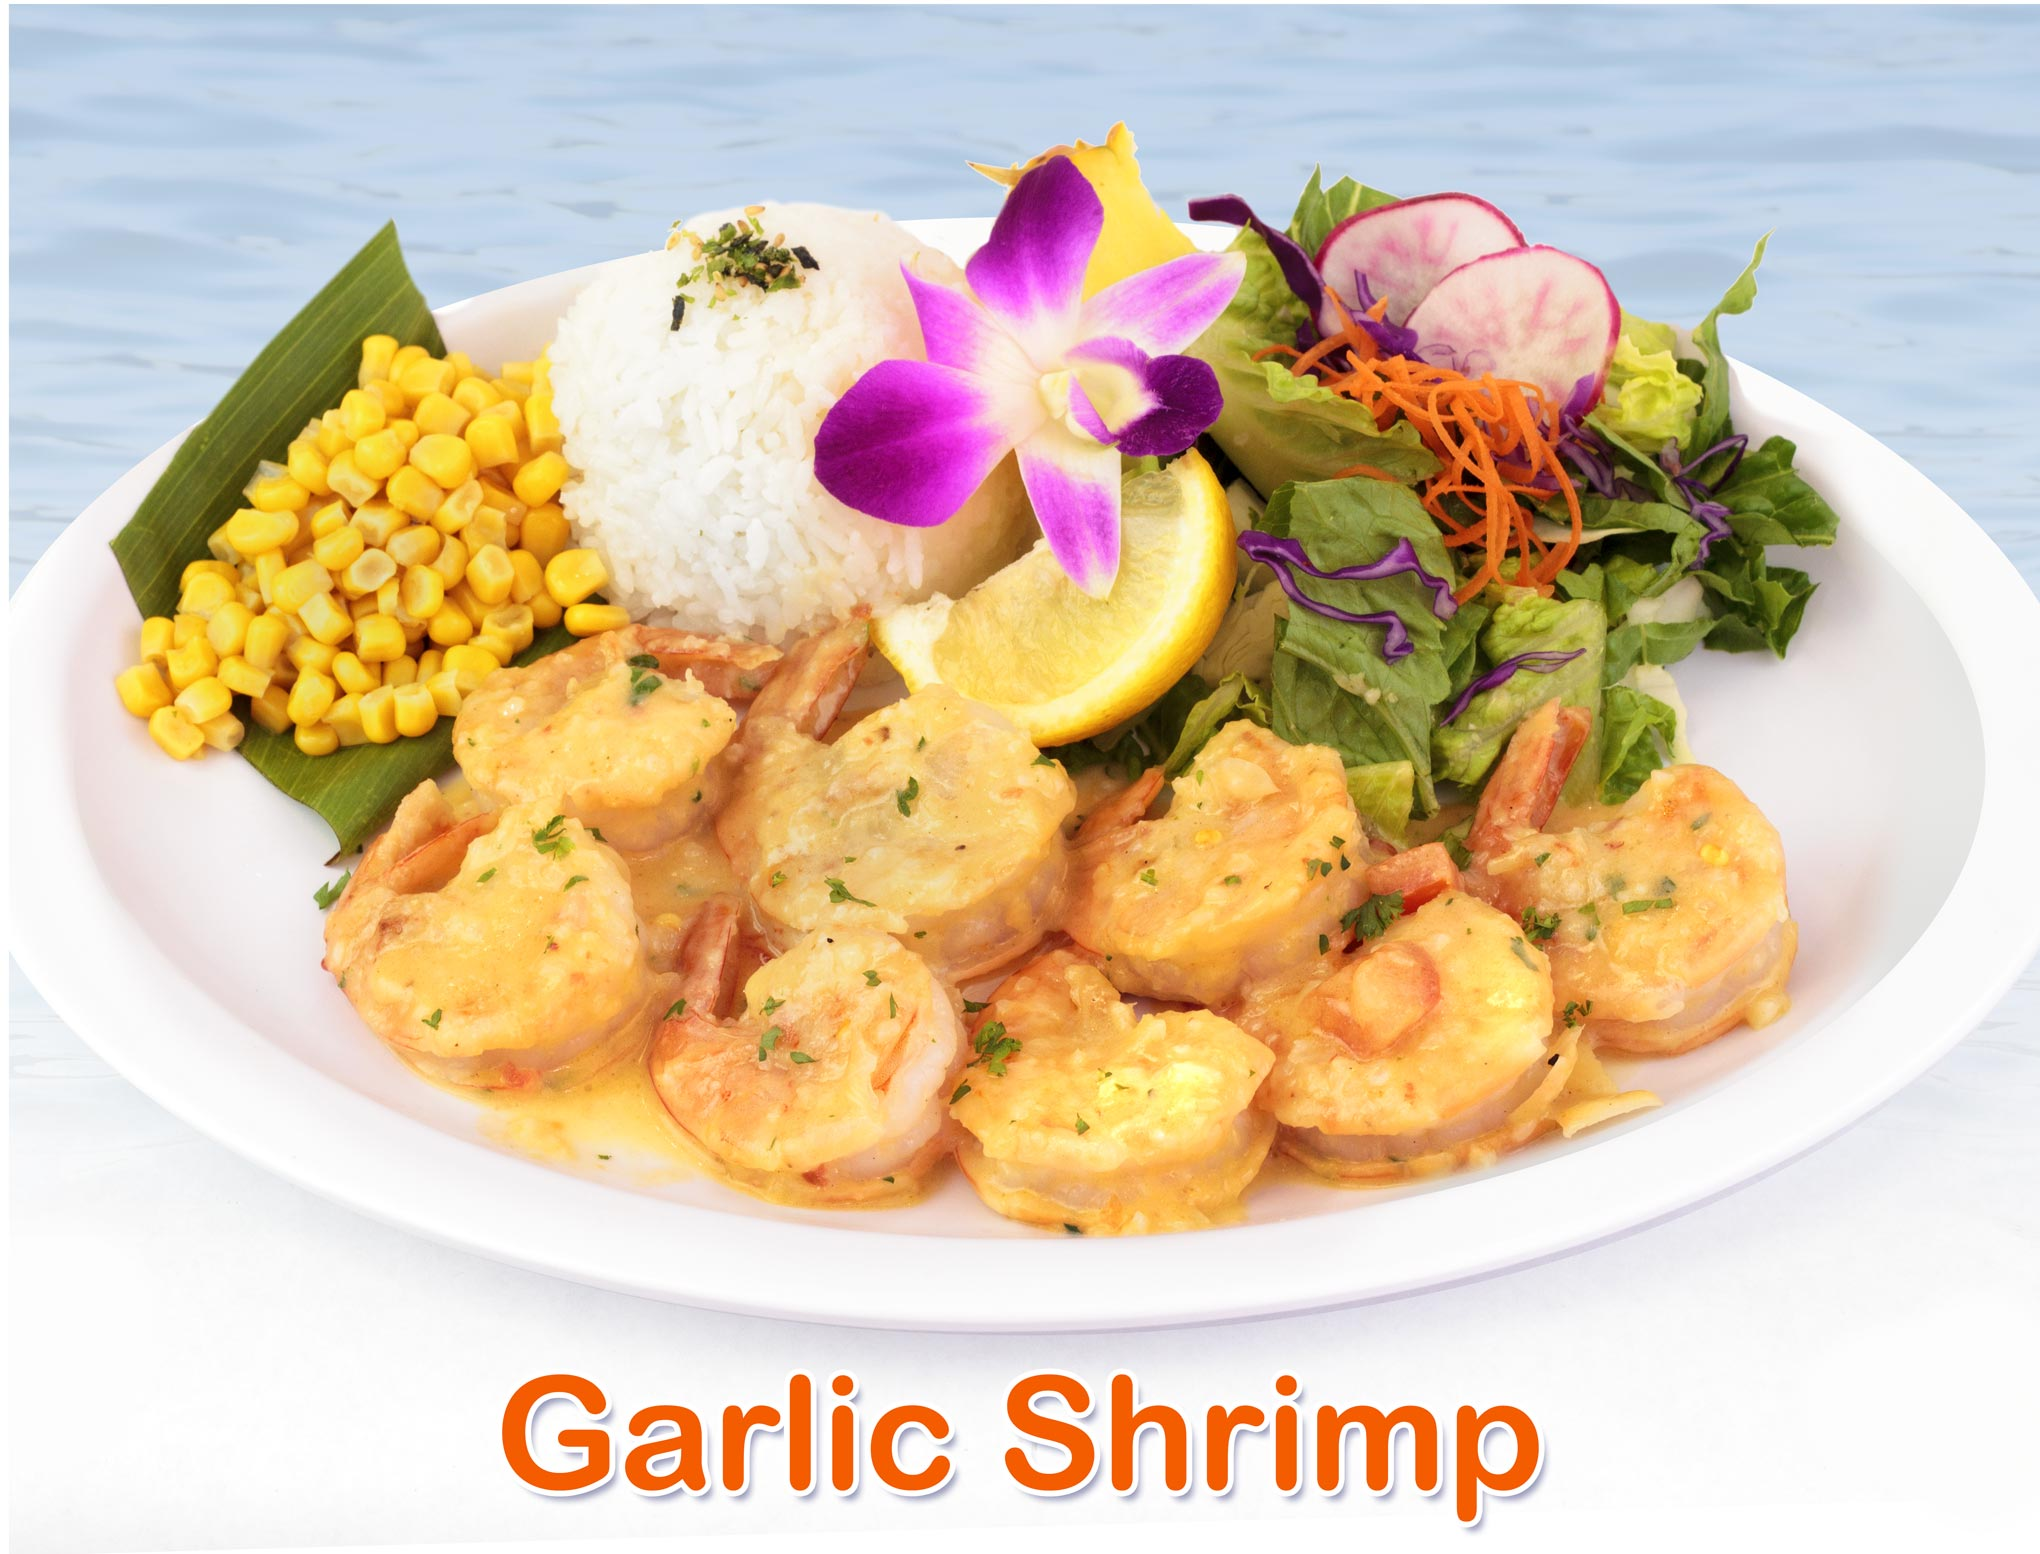 Famous Garlic Shrimp